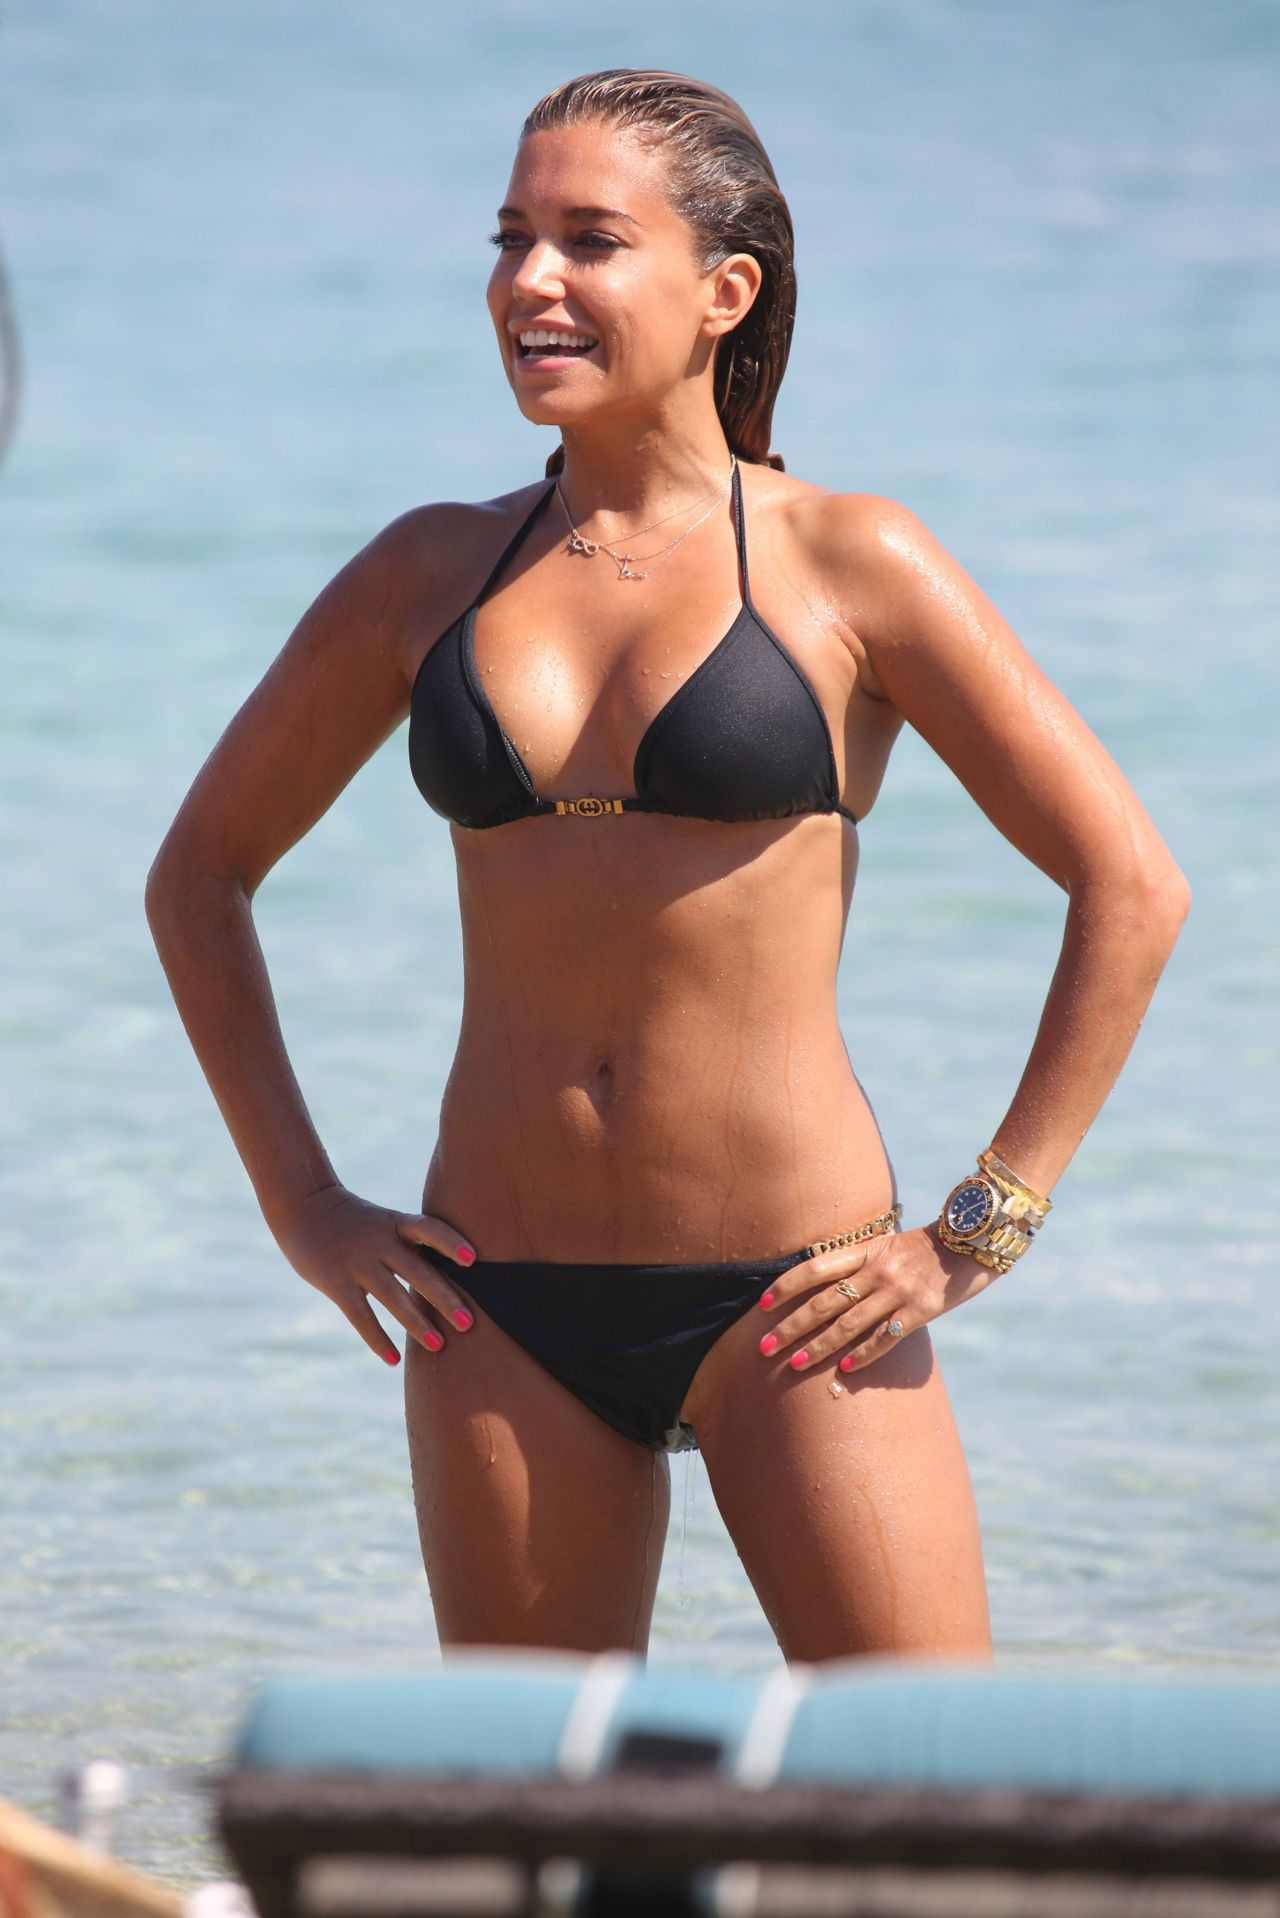 Sylvie Meis in Black Bikini on the beach in Miami Pic 34 of 35